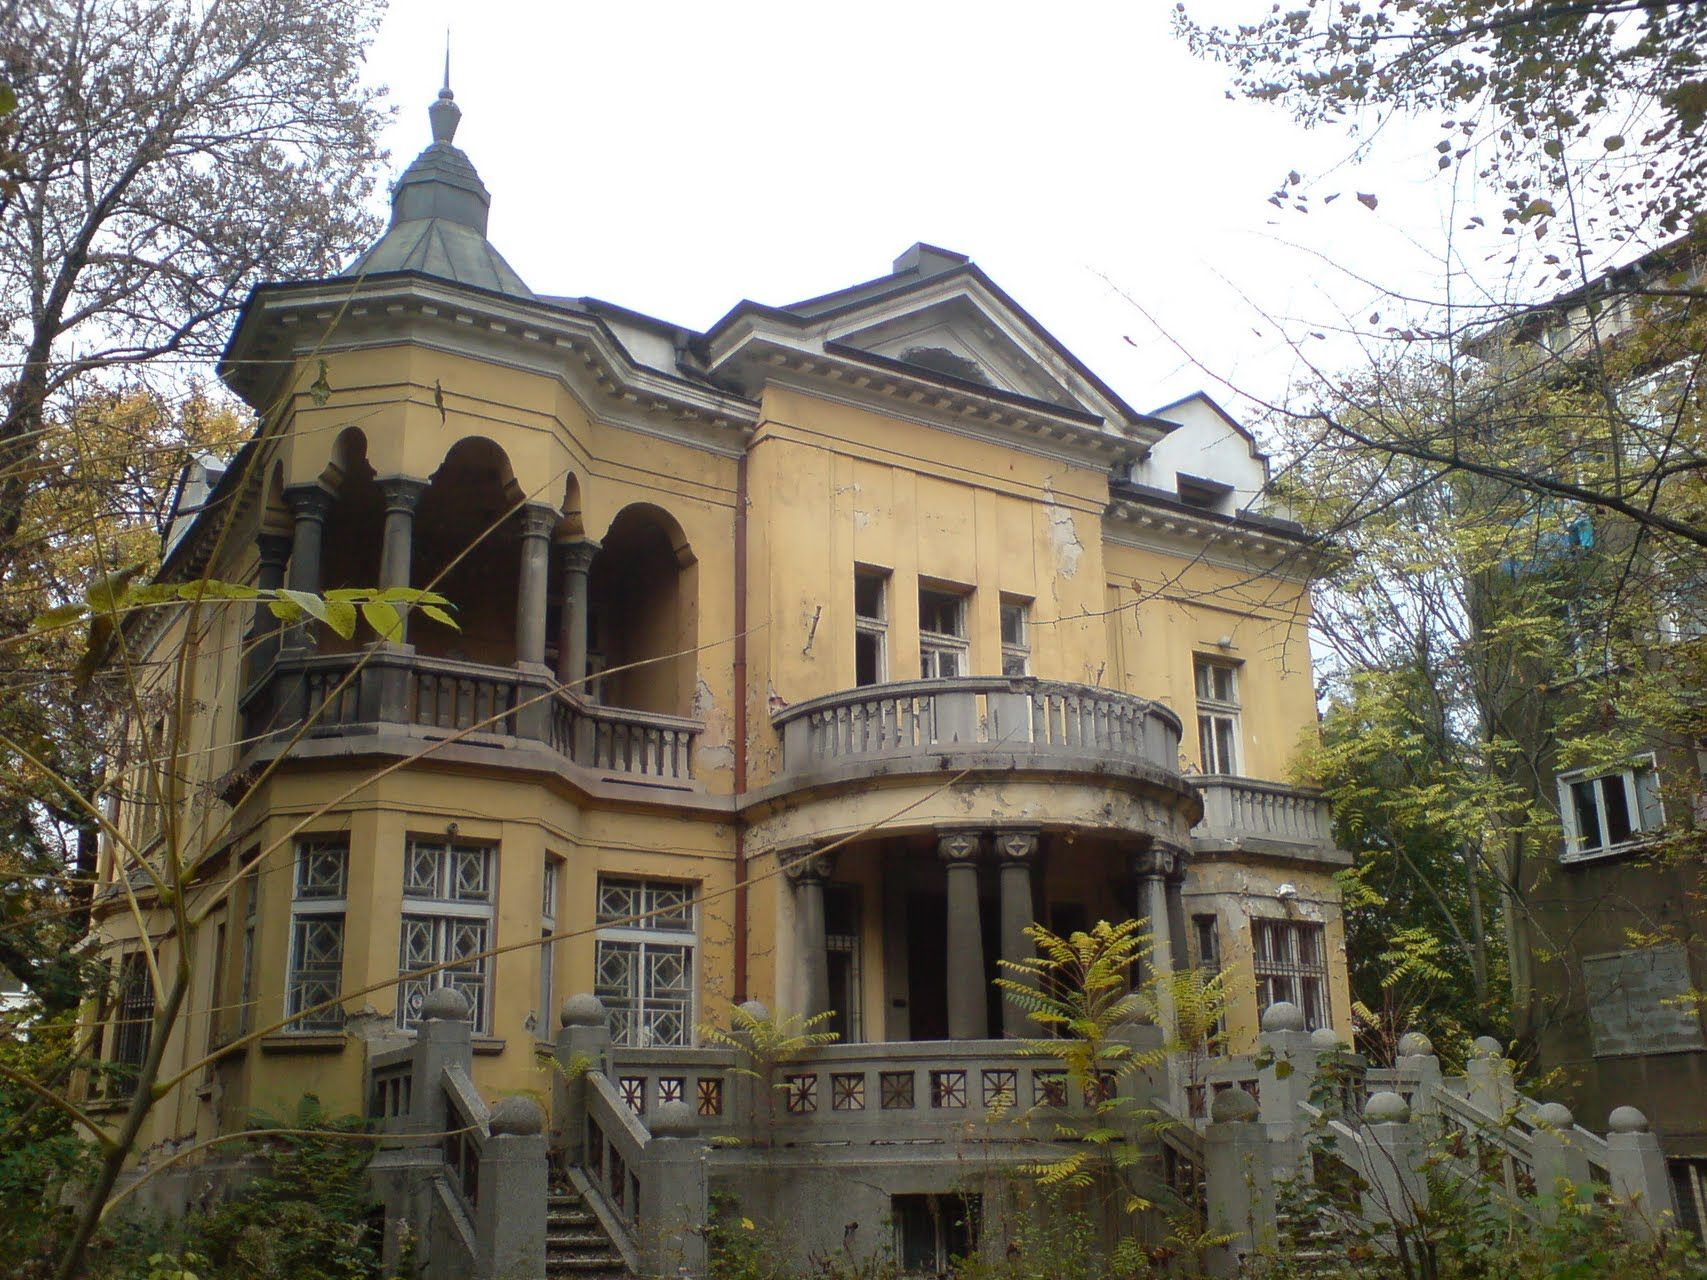 I wonder why this beautiful house was abandoned. There's ...